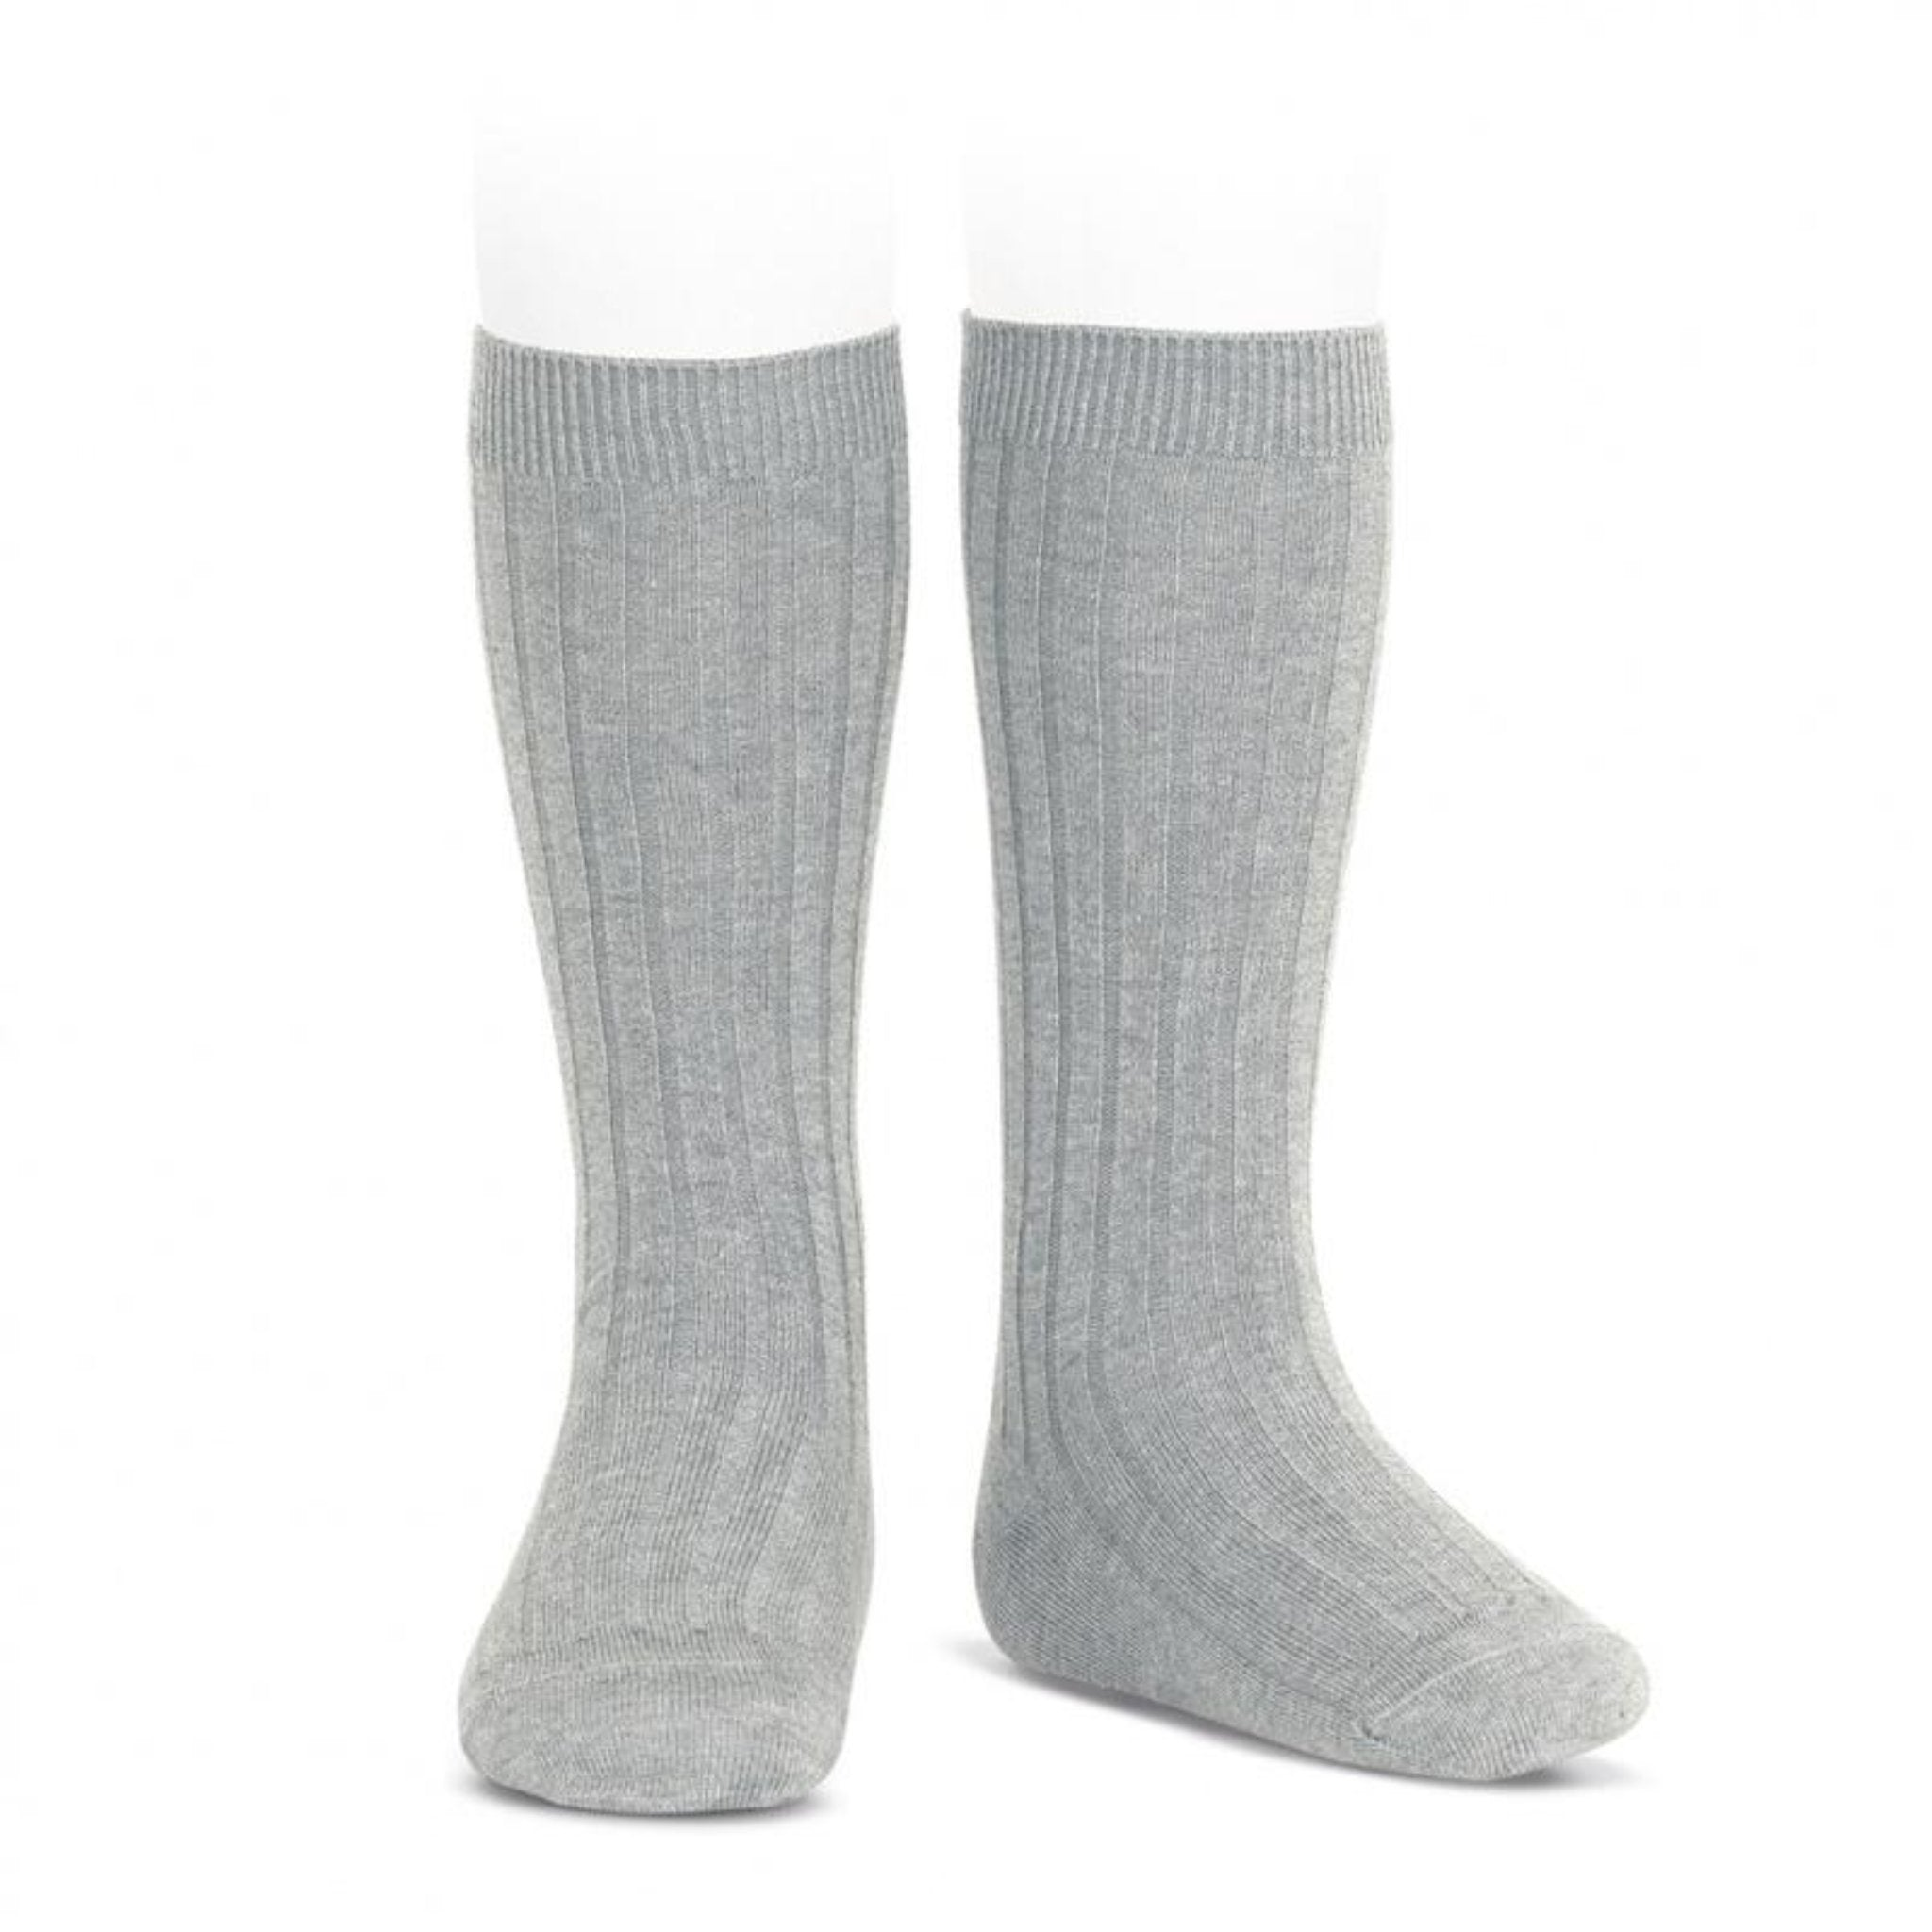 CONDOR Wide Ribbed Cotton Knee High Socks Aluminio Grey (#221)